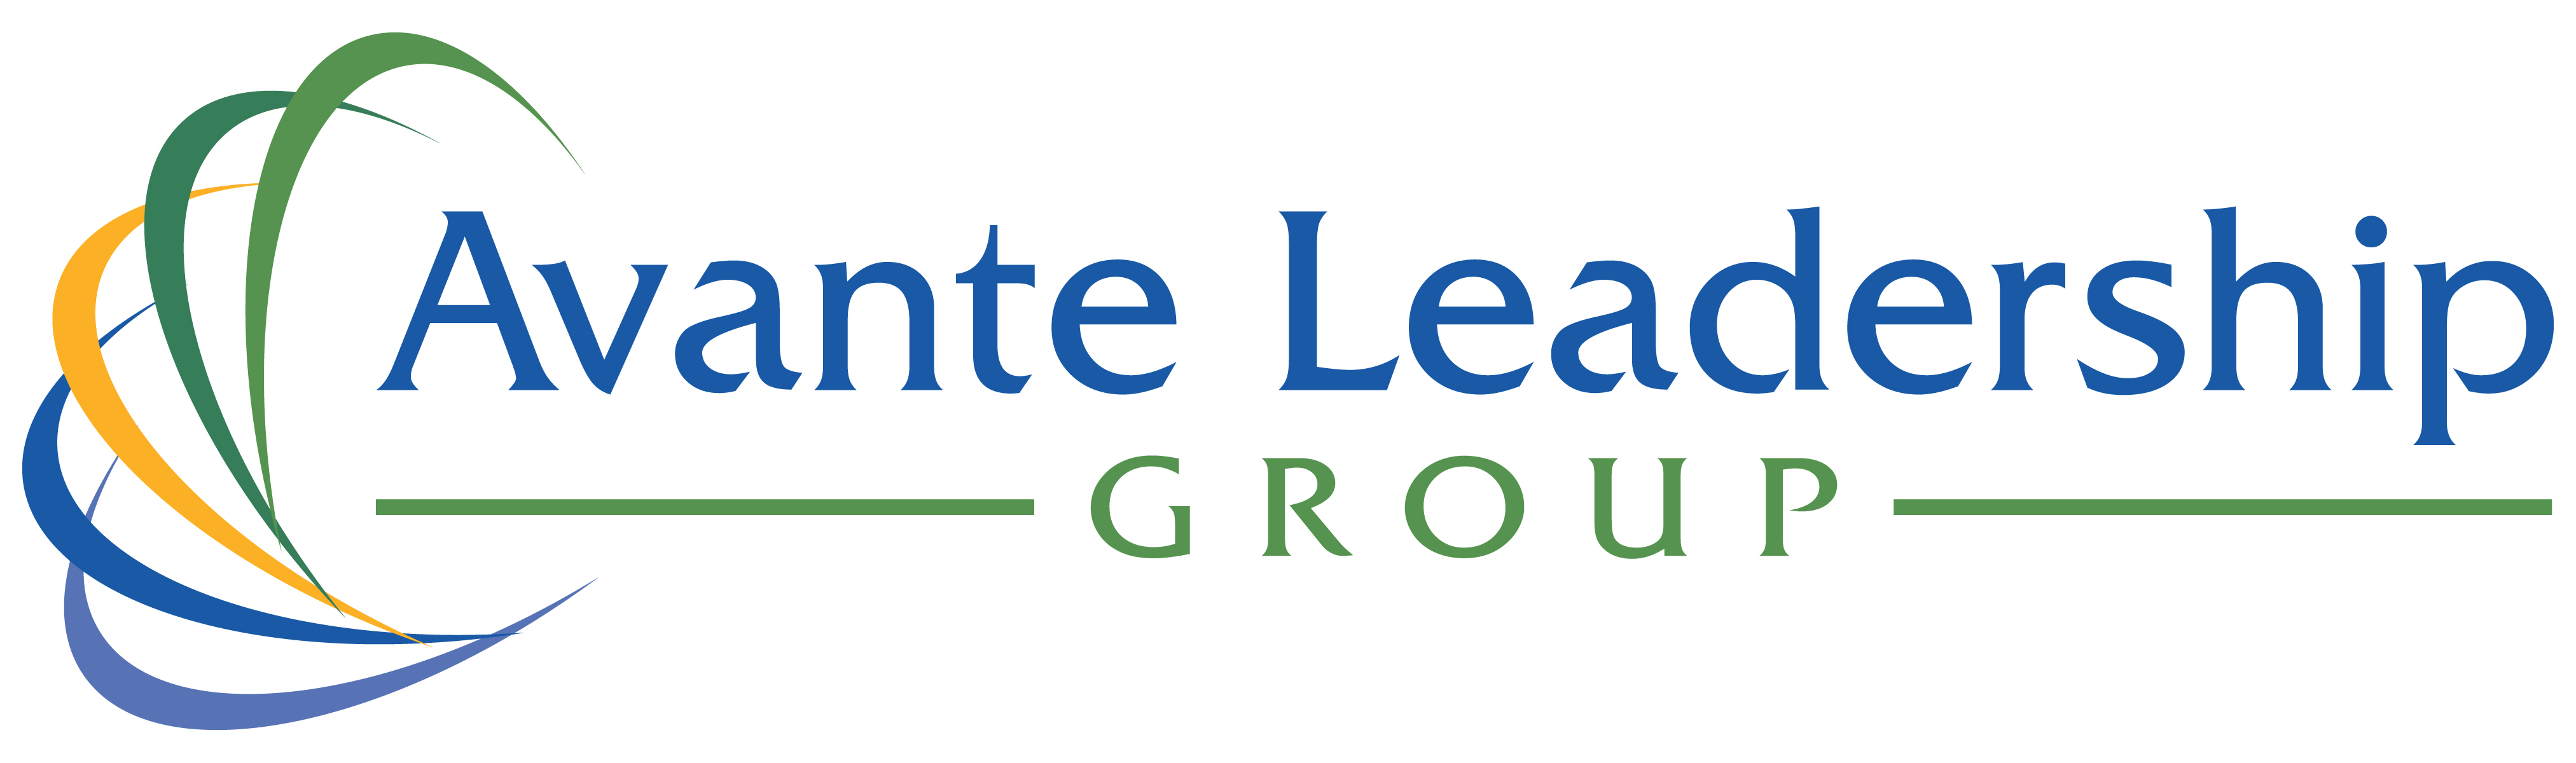 Avante Leadership Group Logo